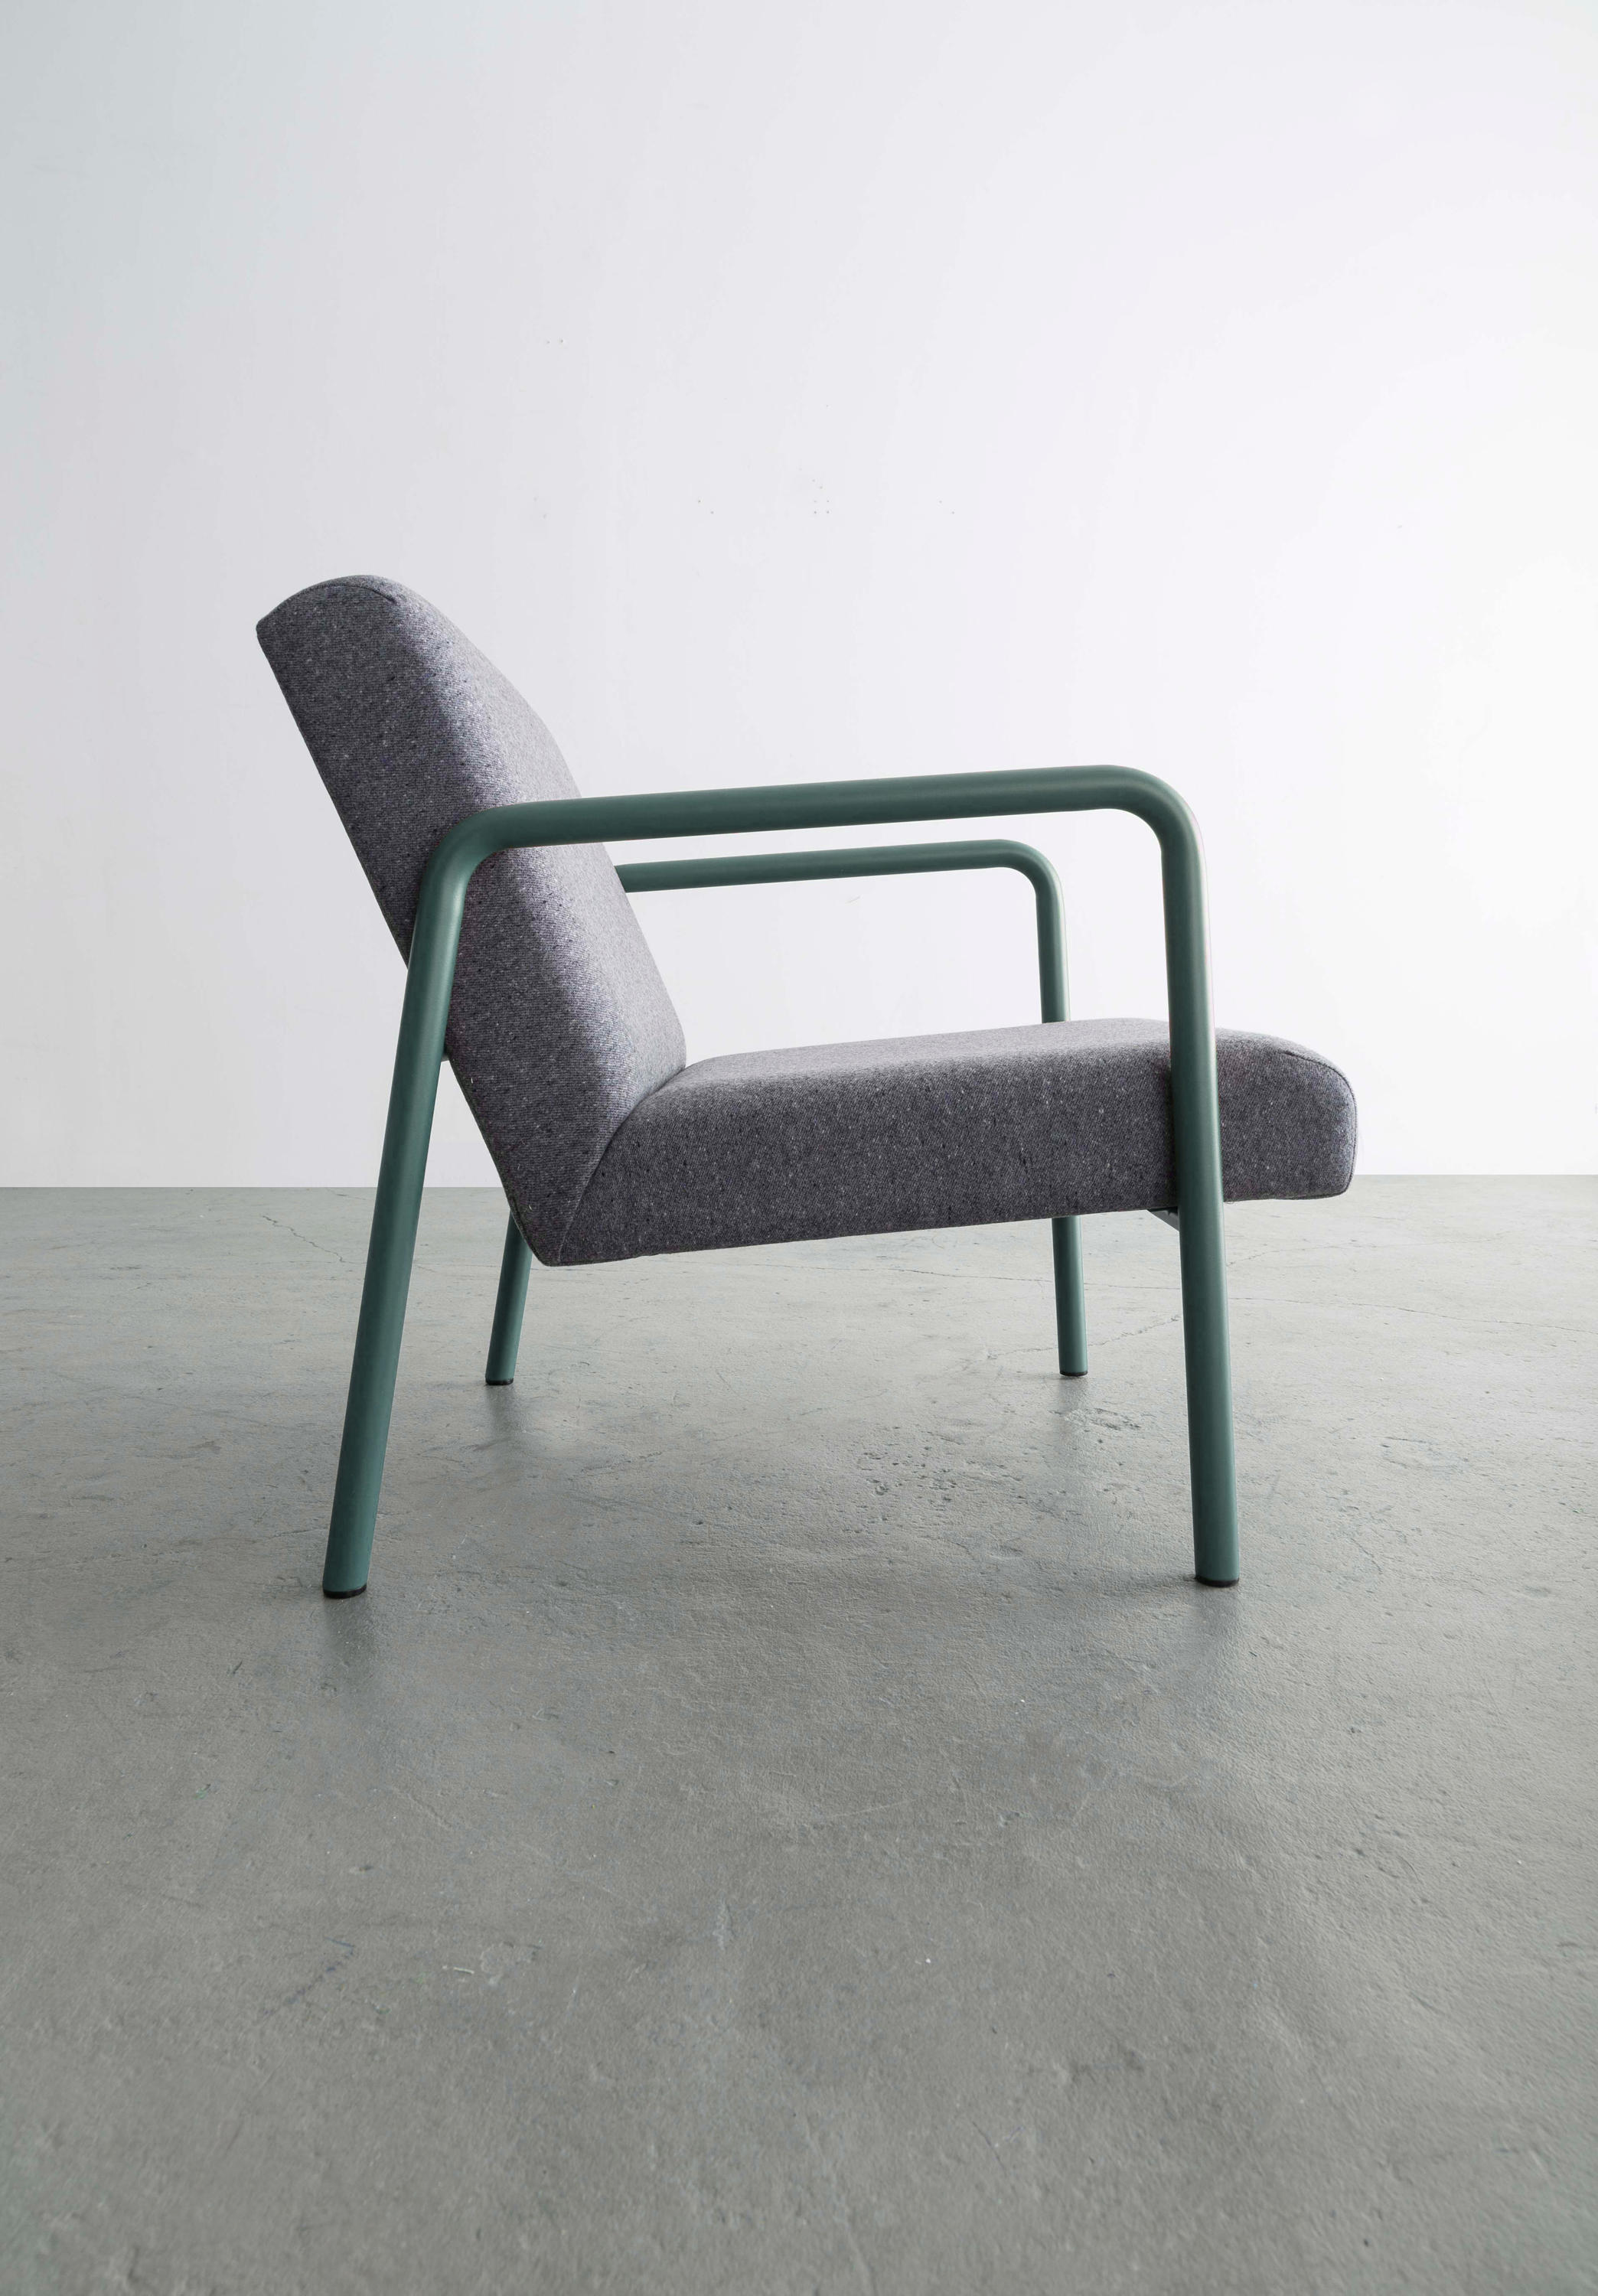 Berm Lounge Chair By David Nor Design Armchairs